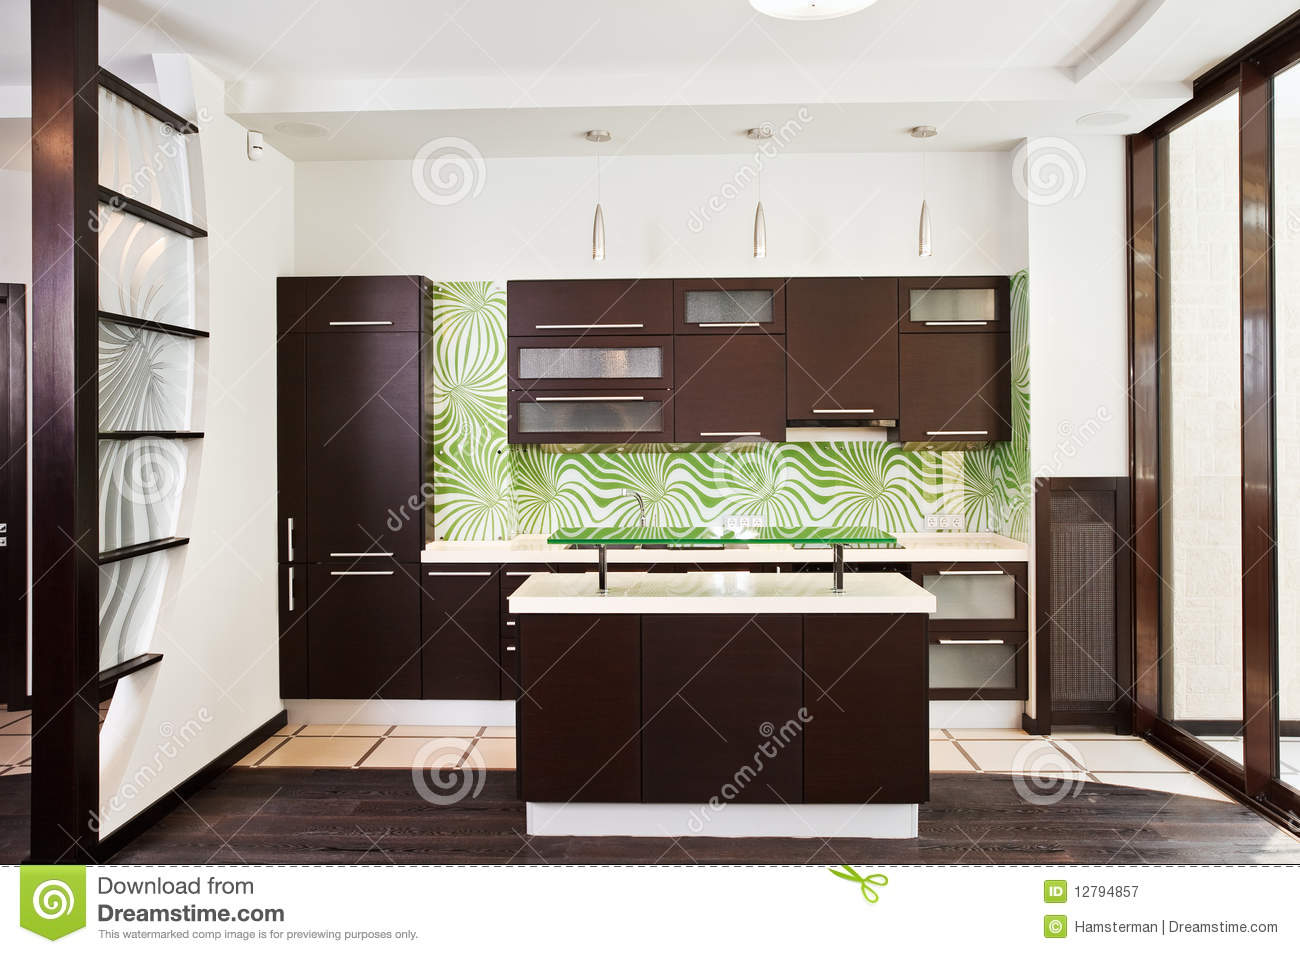 Photography Modern Kitchen Interior Dark Wooden Floor Image12794857